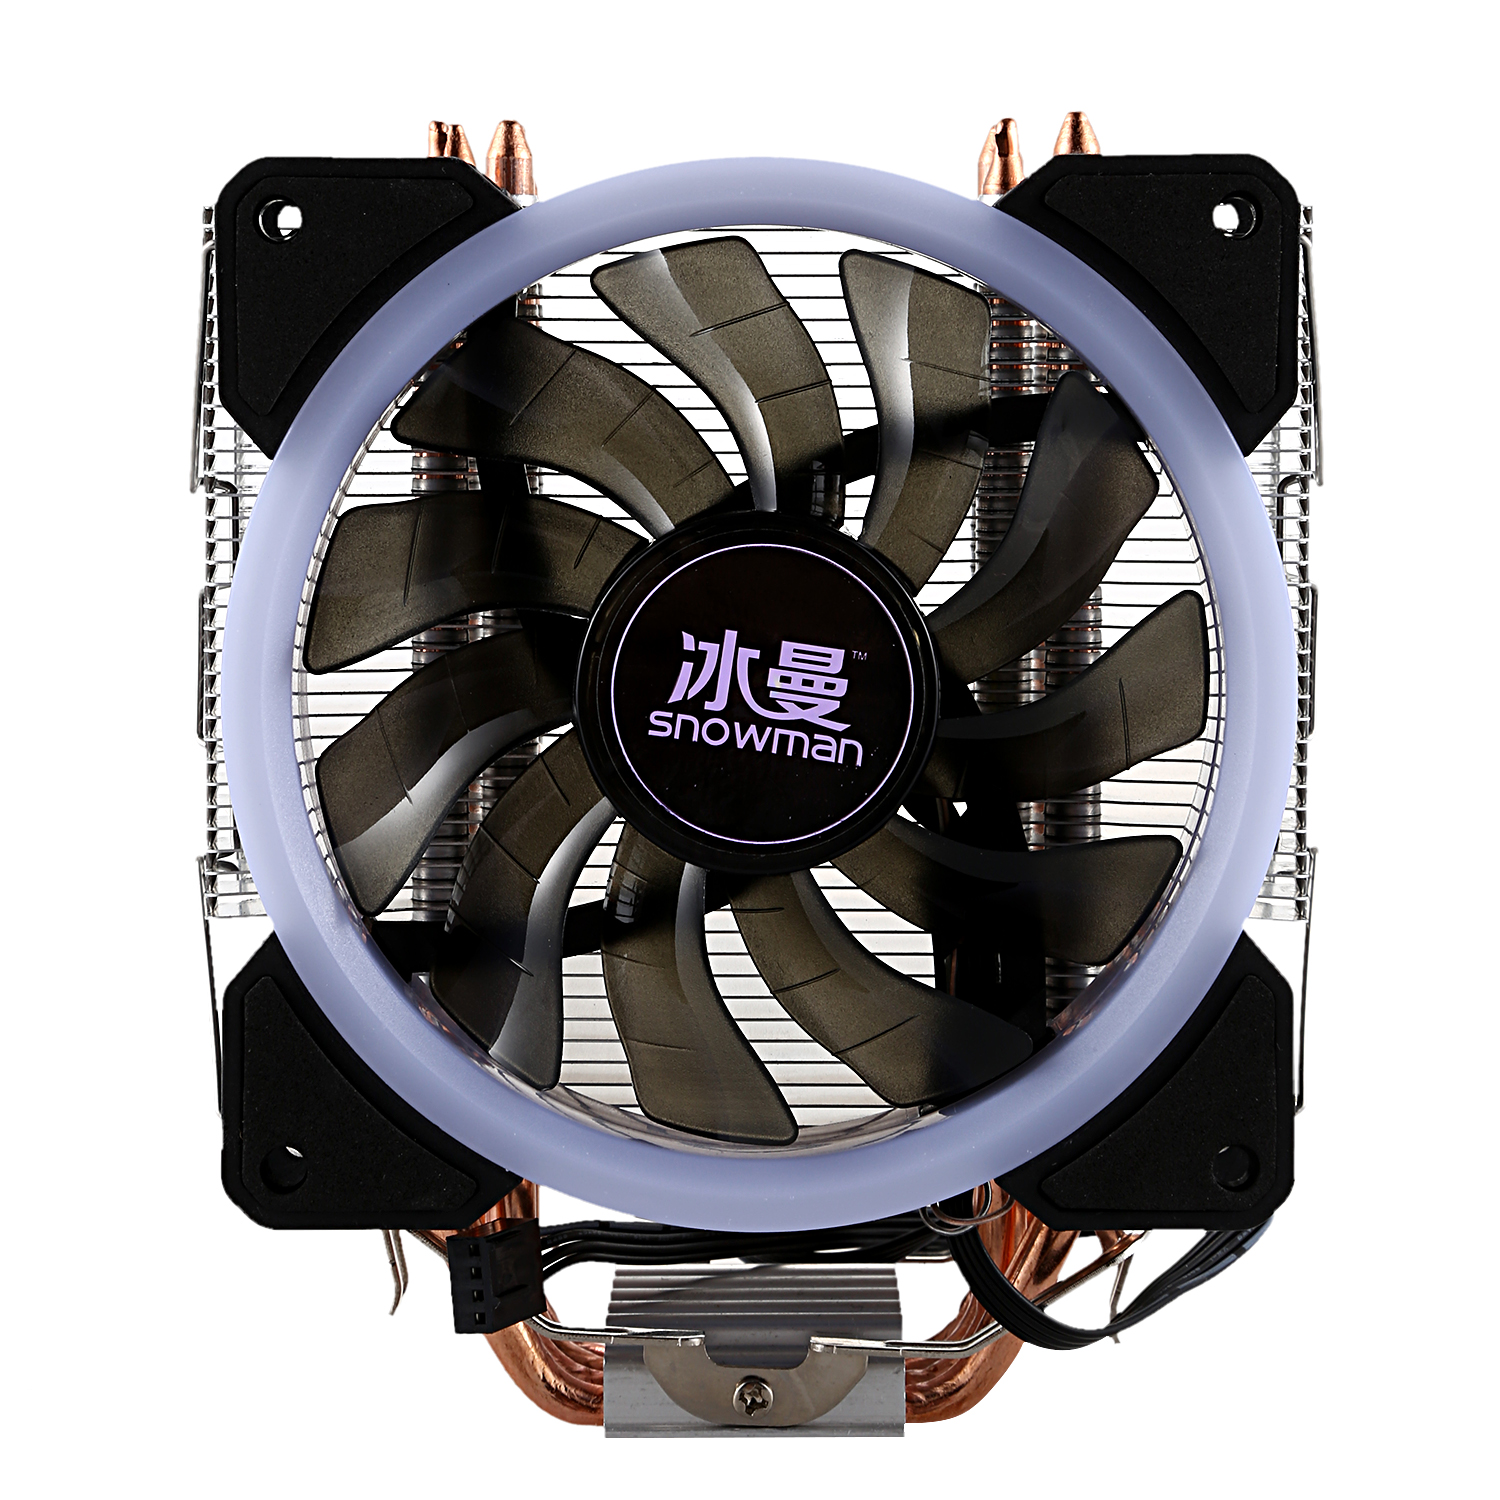 SNOWMAN LED CPU Cooler Master 5 Direct Contact Heatpipes Freeze Tower Cooling System CPU Cooling Fan With PWM Fans